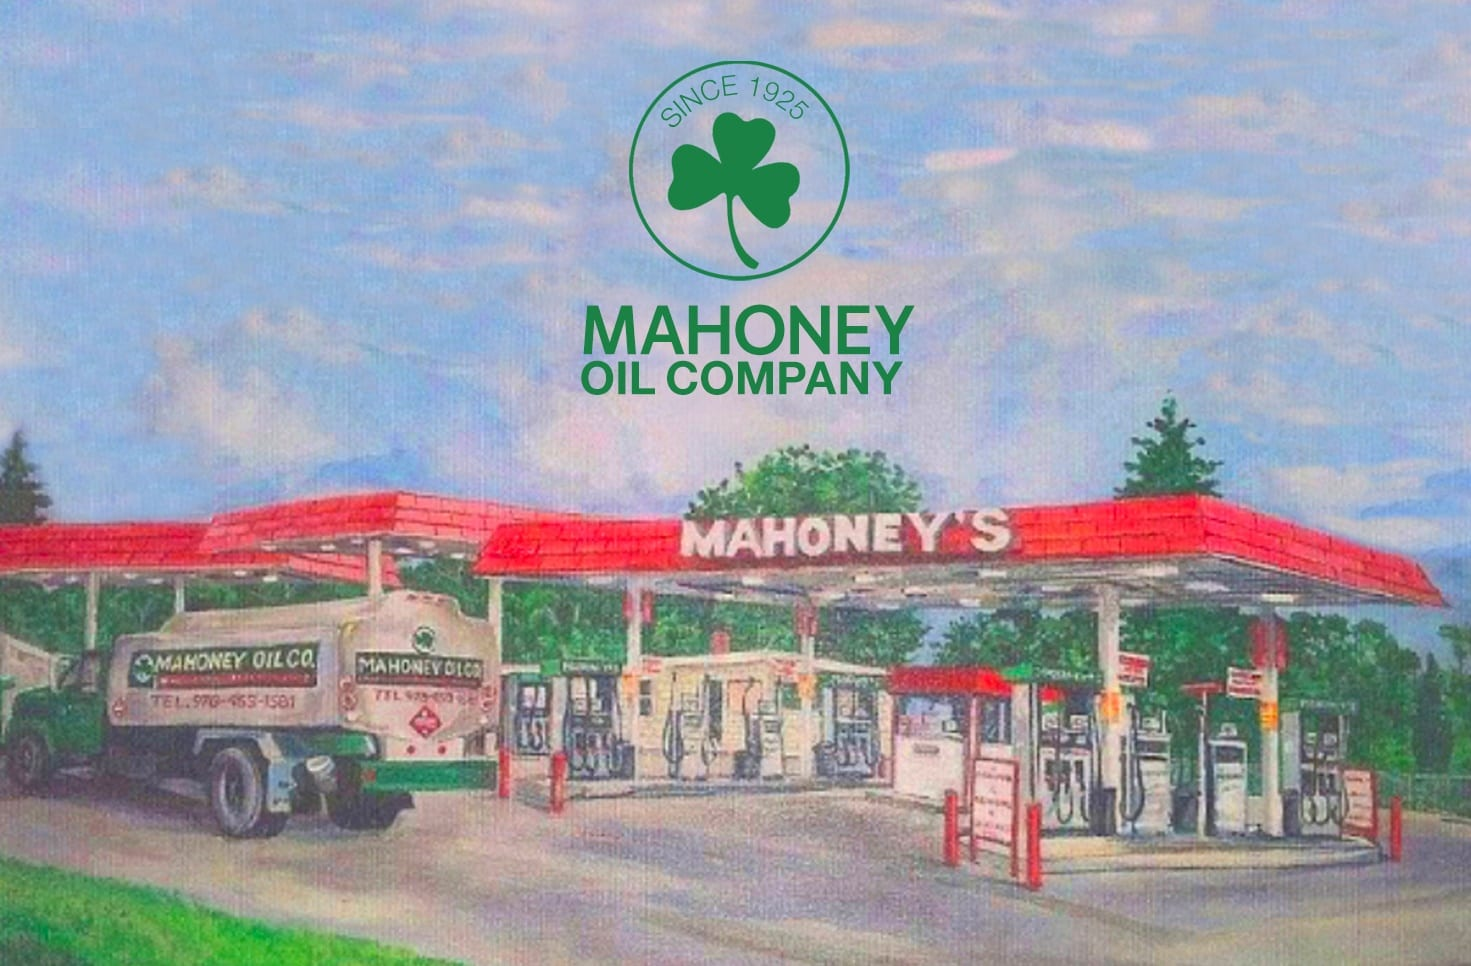 Mahoney Oil Company